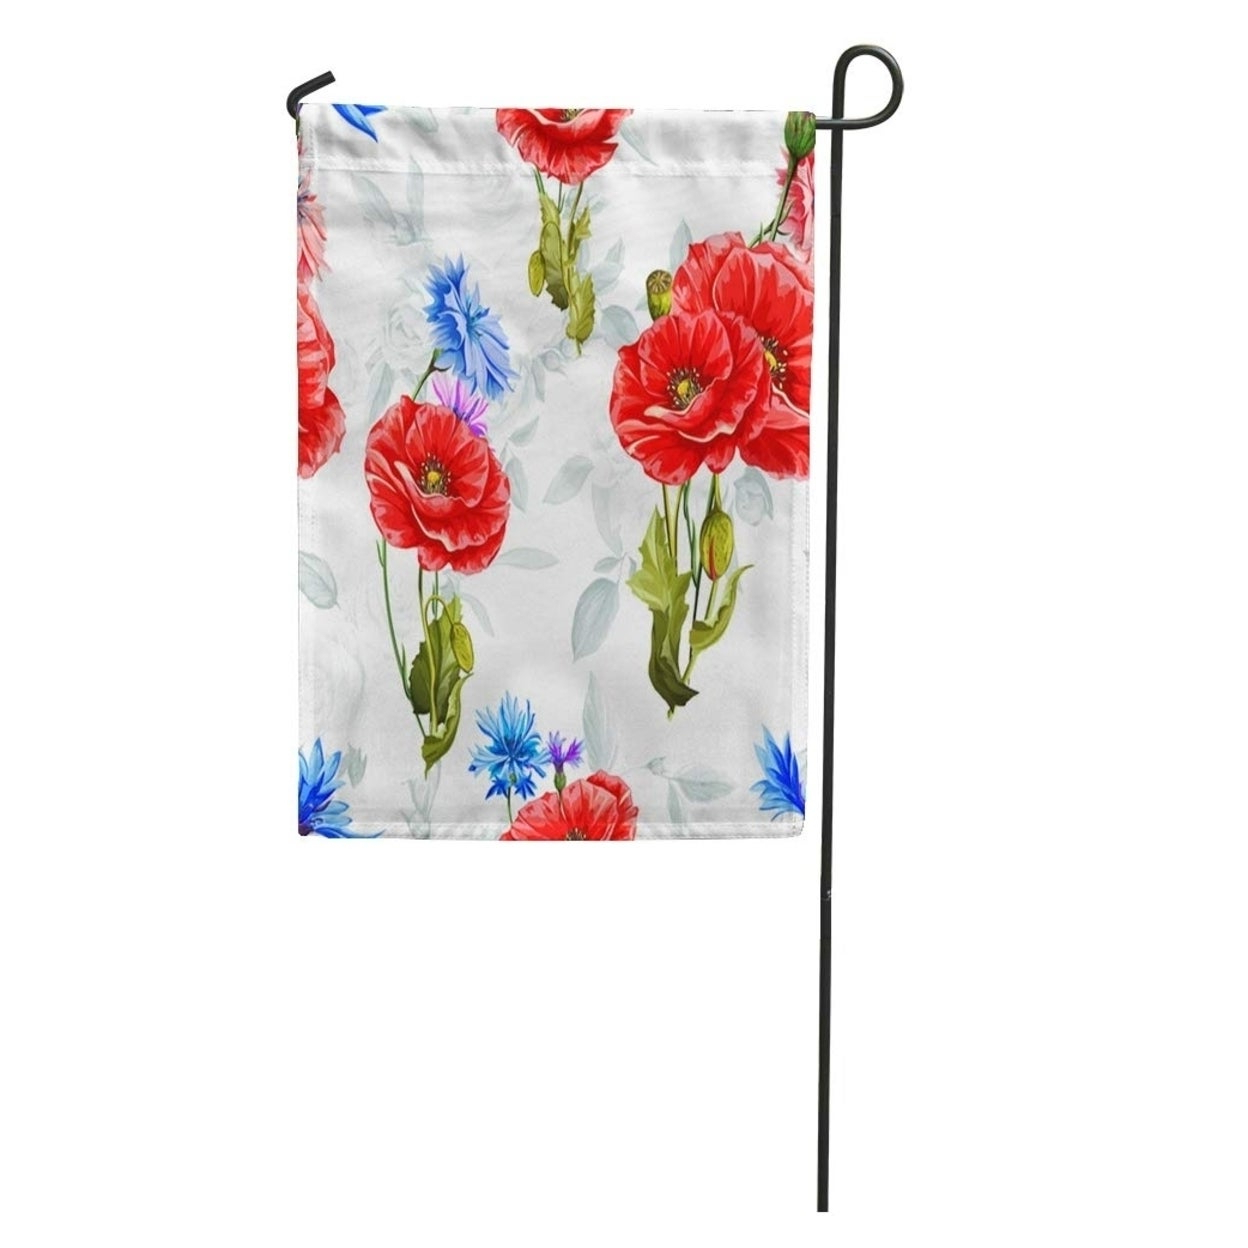 Well Liked Watercolor Poppy Cornflowers And Roses On Pattern Of Flowers Blue Garden Flag Decorative Flag House Banner 28x40 Inch Inside Wilde Poppies Ceramic Garden Stools (View 21 of 30)